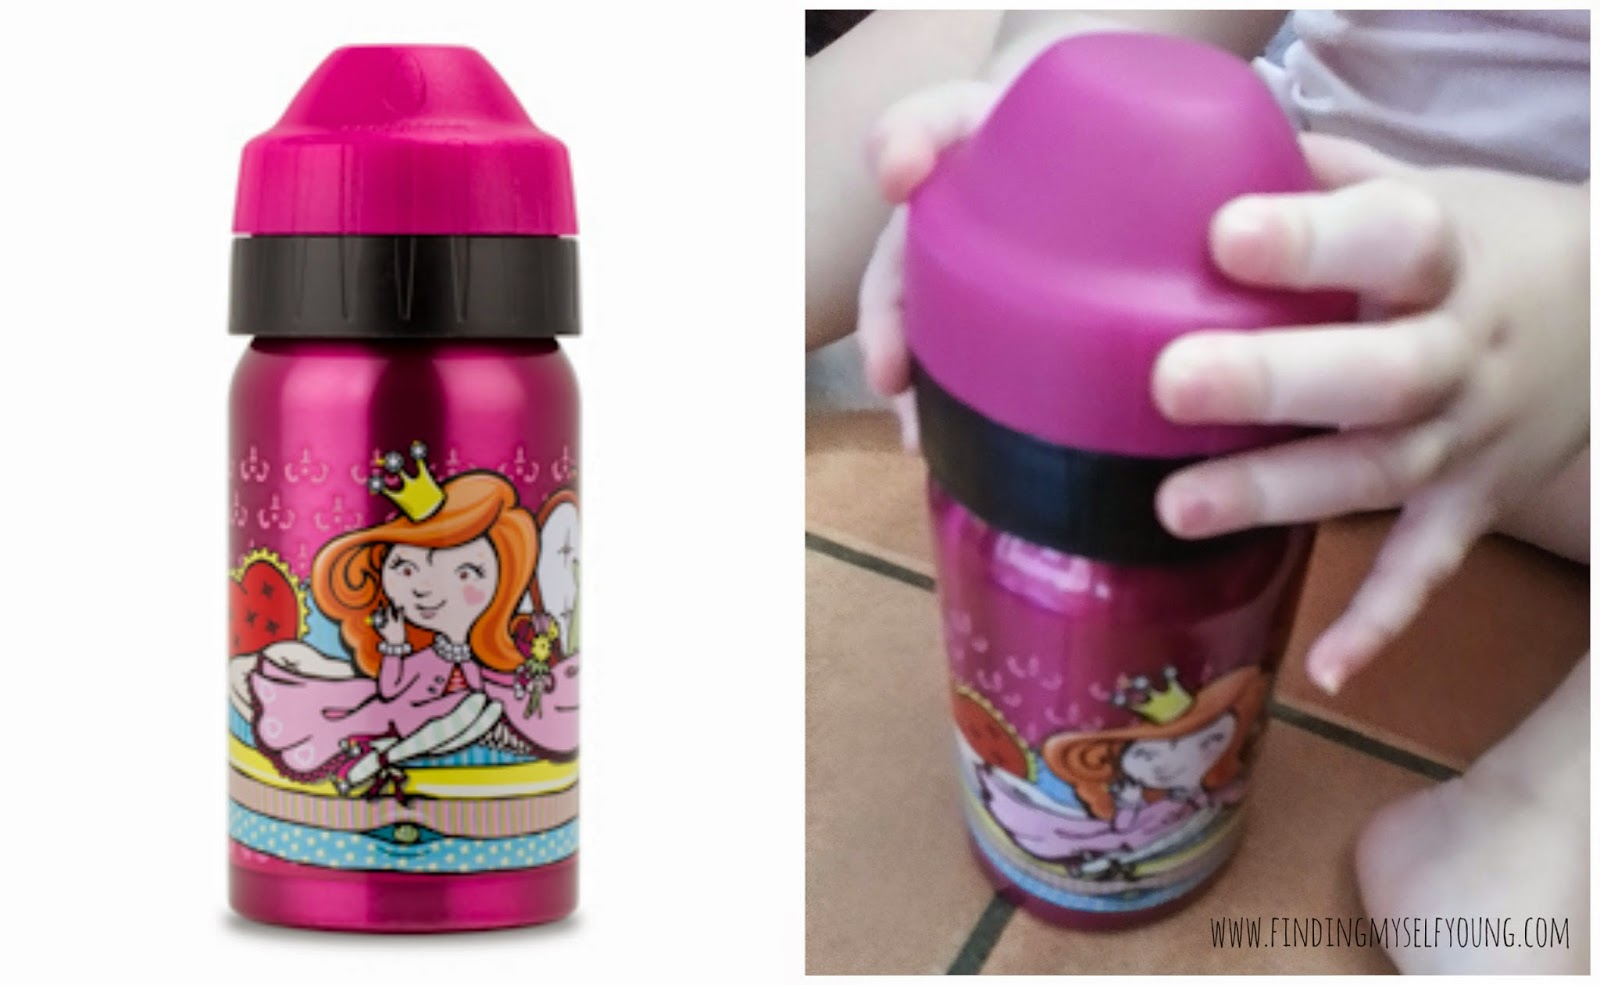 Ecococoon Princess Coco 350ml bottle